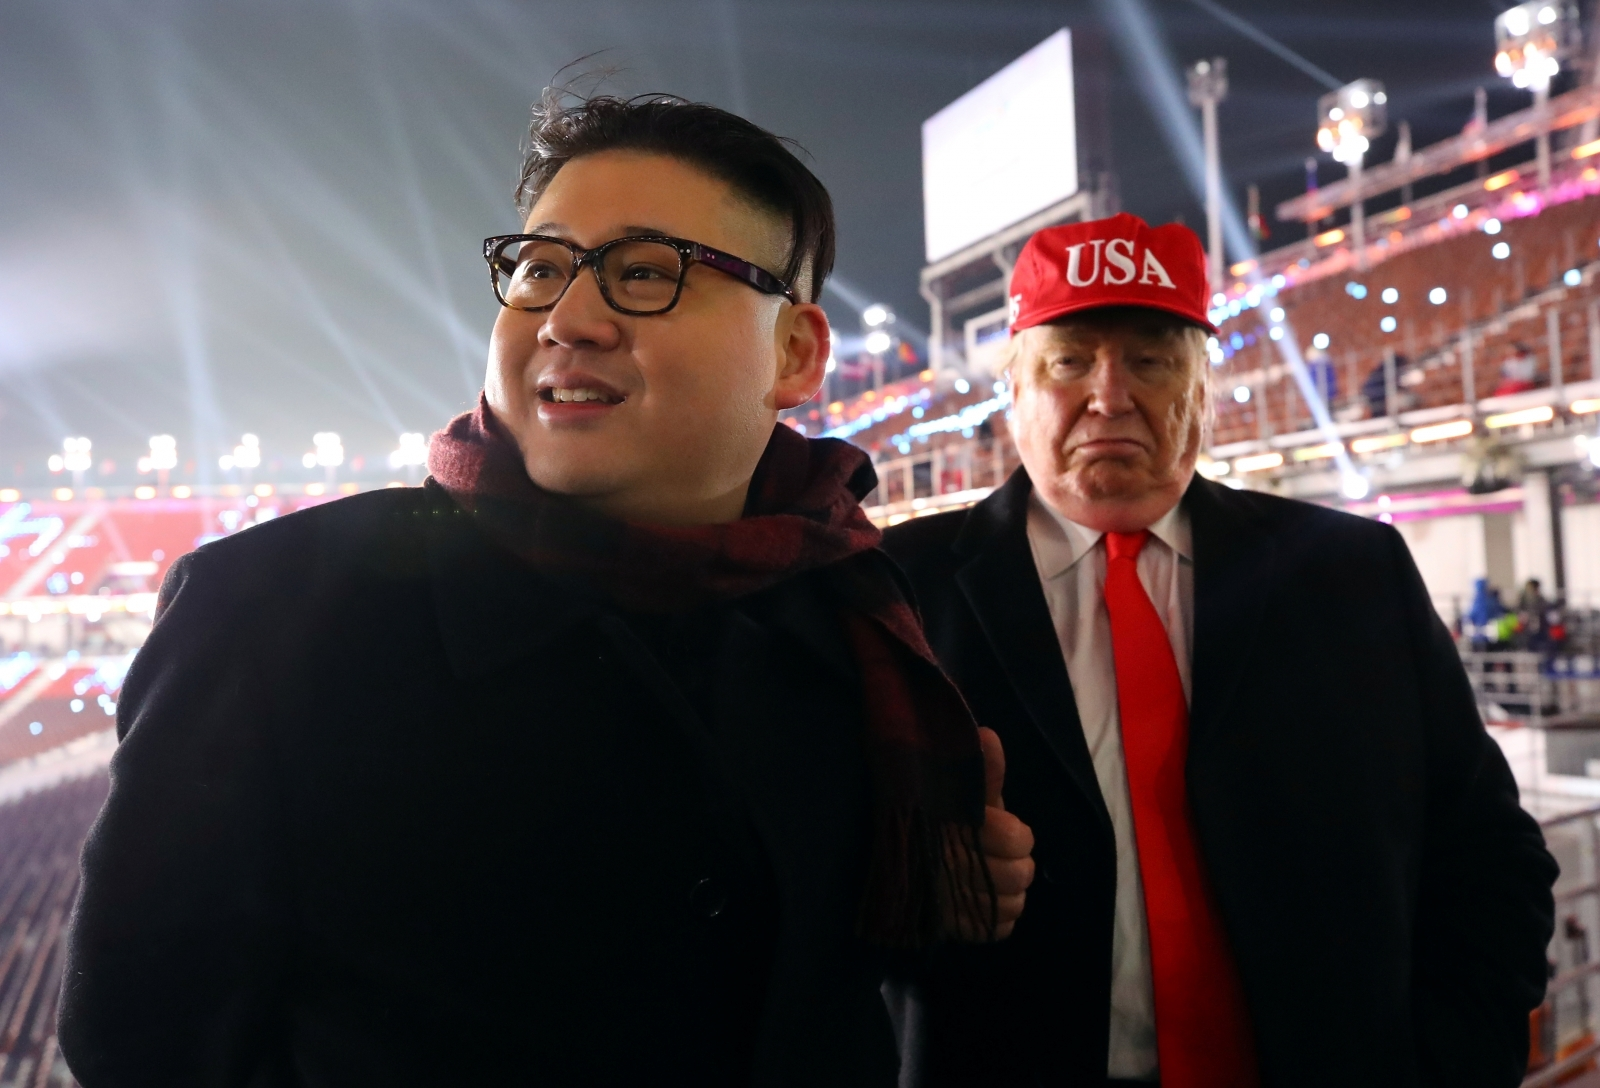 Kim Jong-un and Donald Trump impersonators